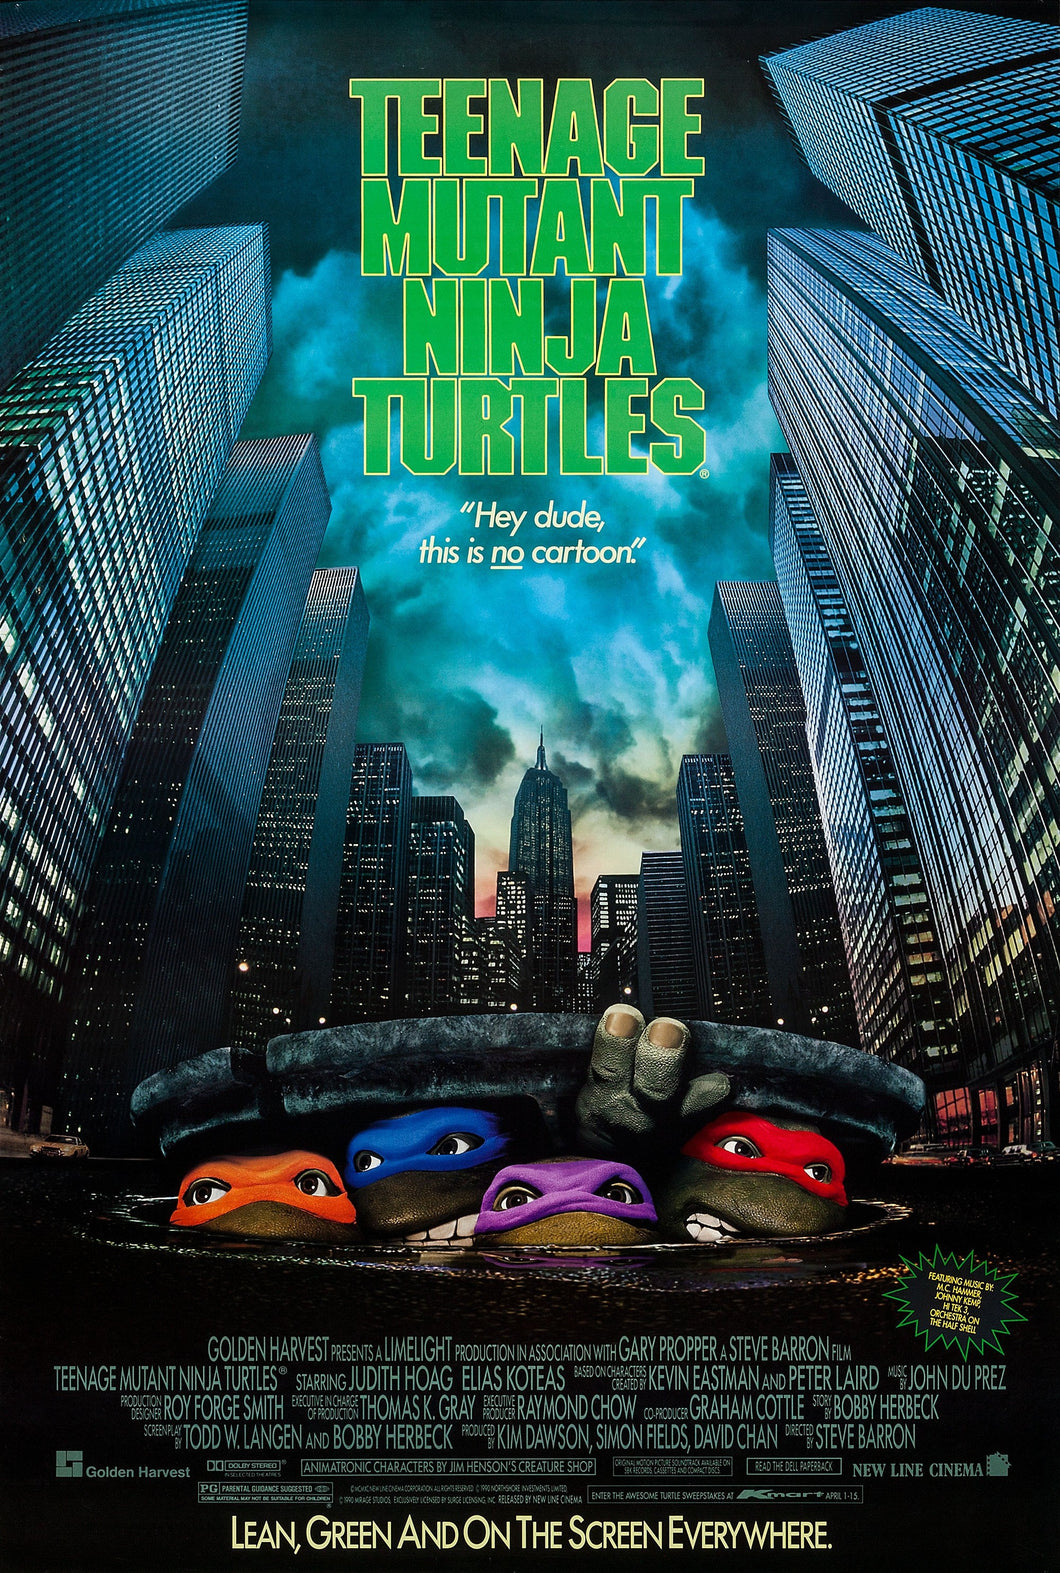 Teenage Mutant Ninja Turtles - 90s Poster - egoamo.co.za